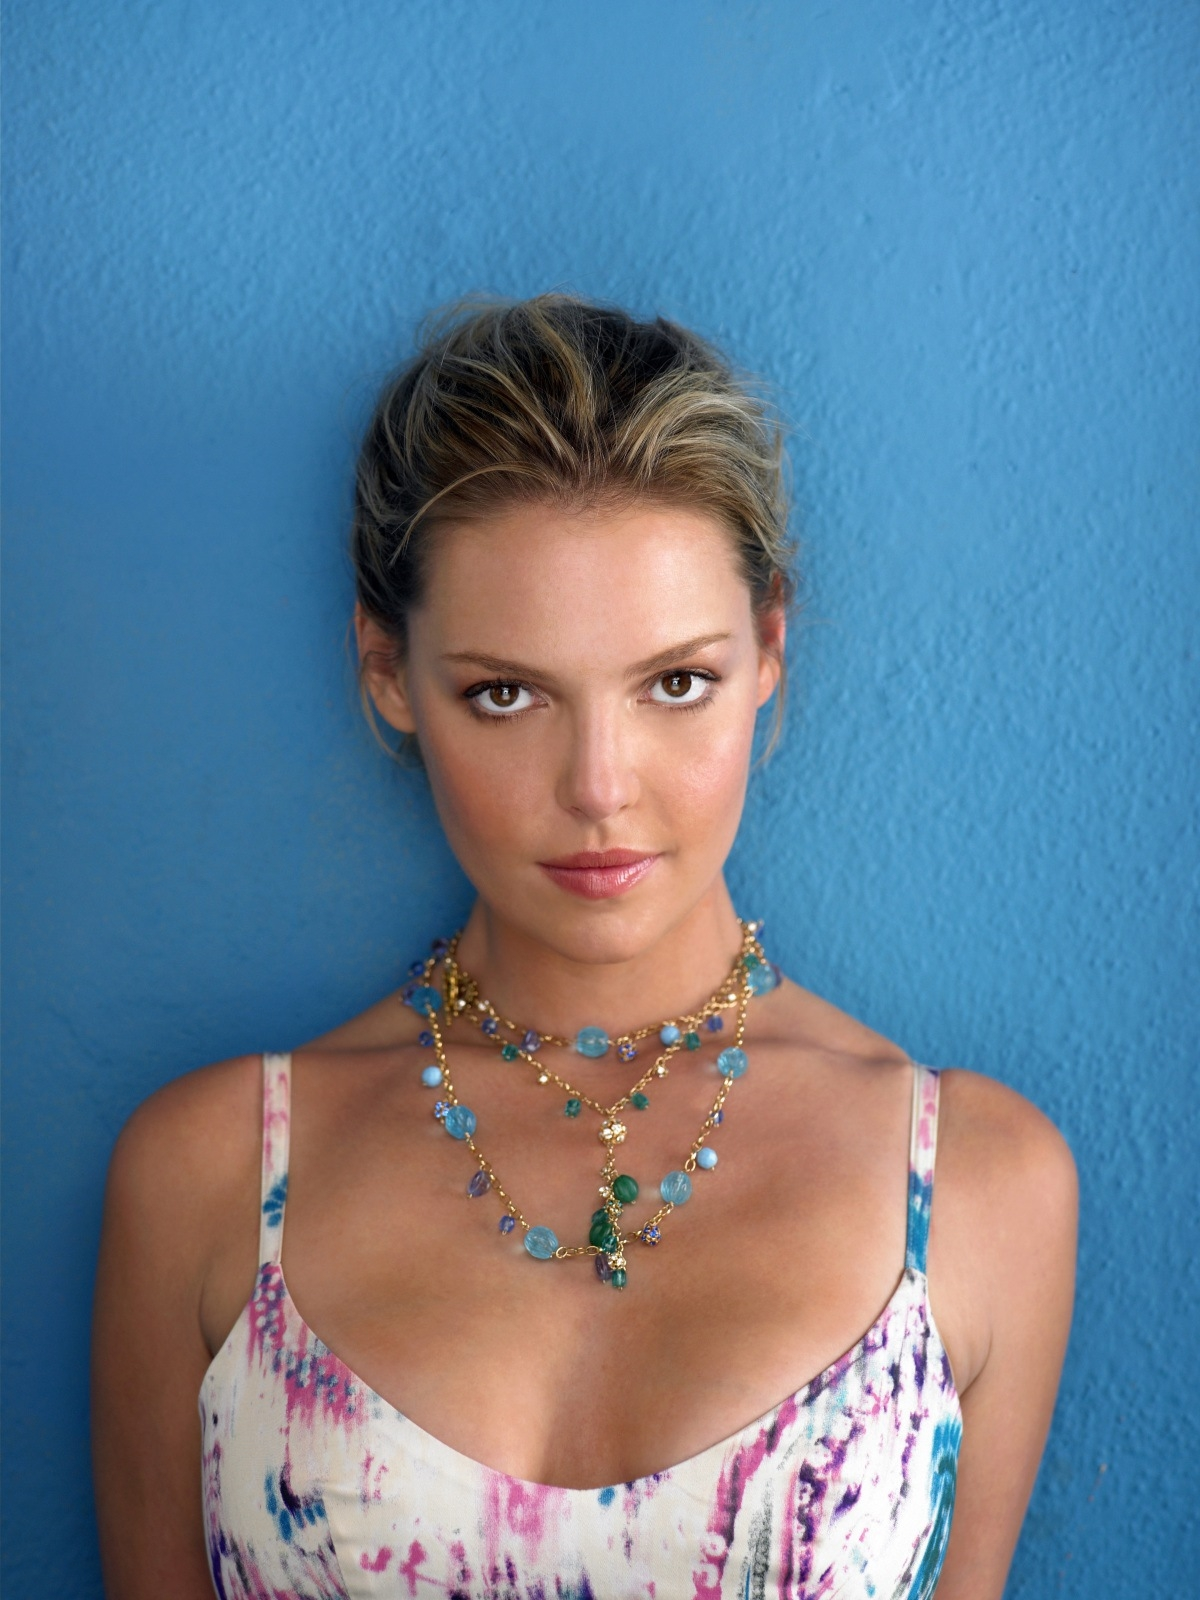 82544_Katherine_Heigl_Razor_Magazine_Photoshoot__May_2009_003_122_59lo.jpg